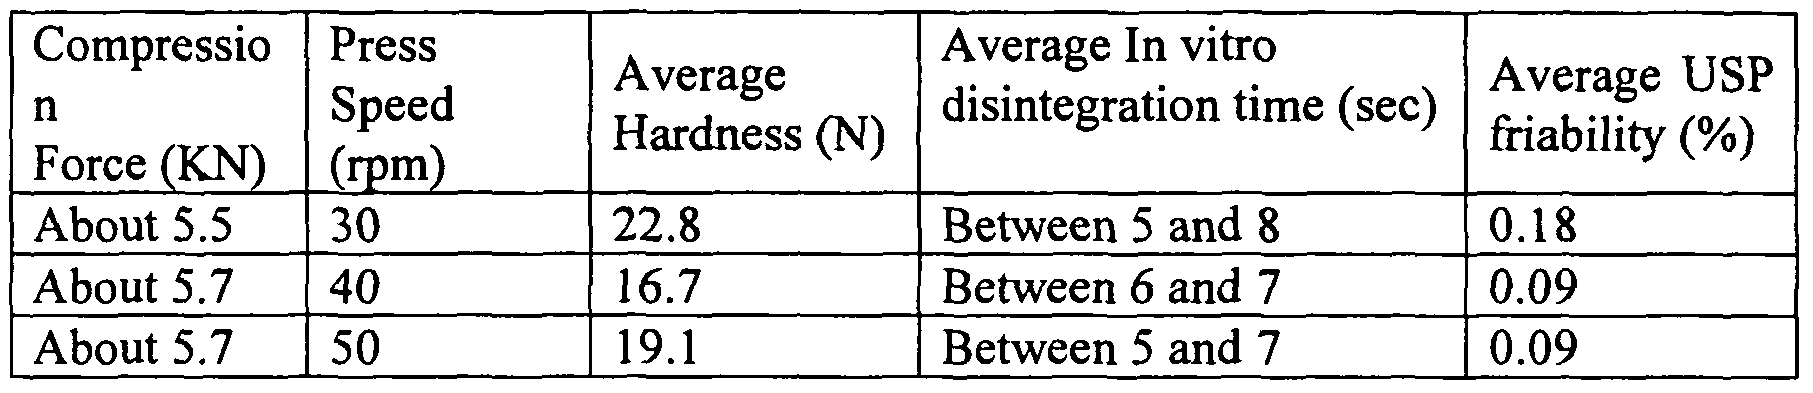 WO2007093305A2 - Low-friability, patient-friendly orally